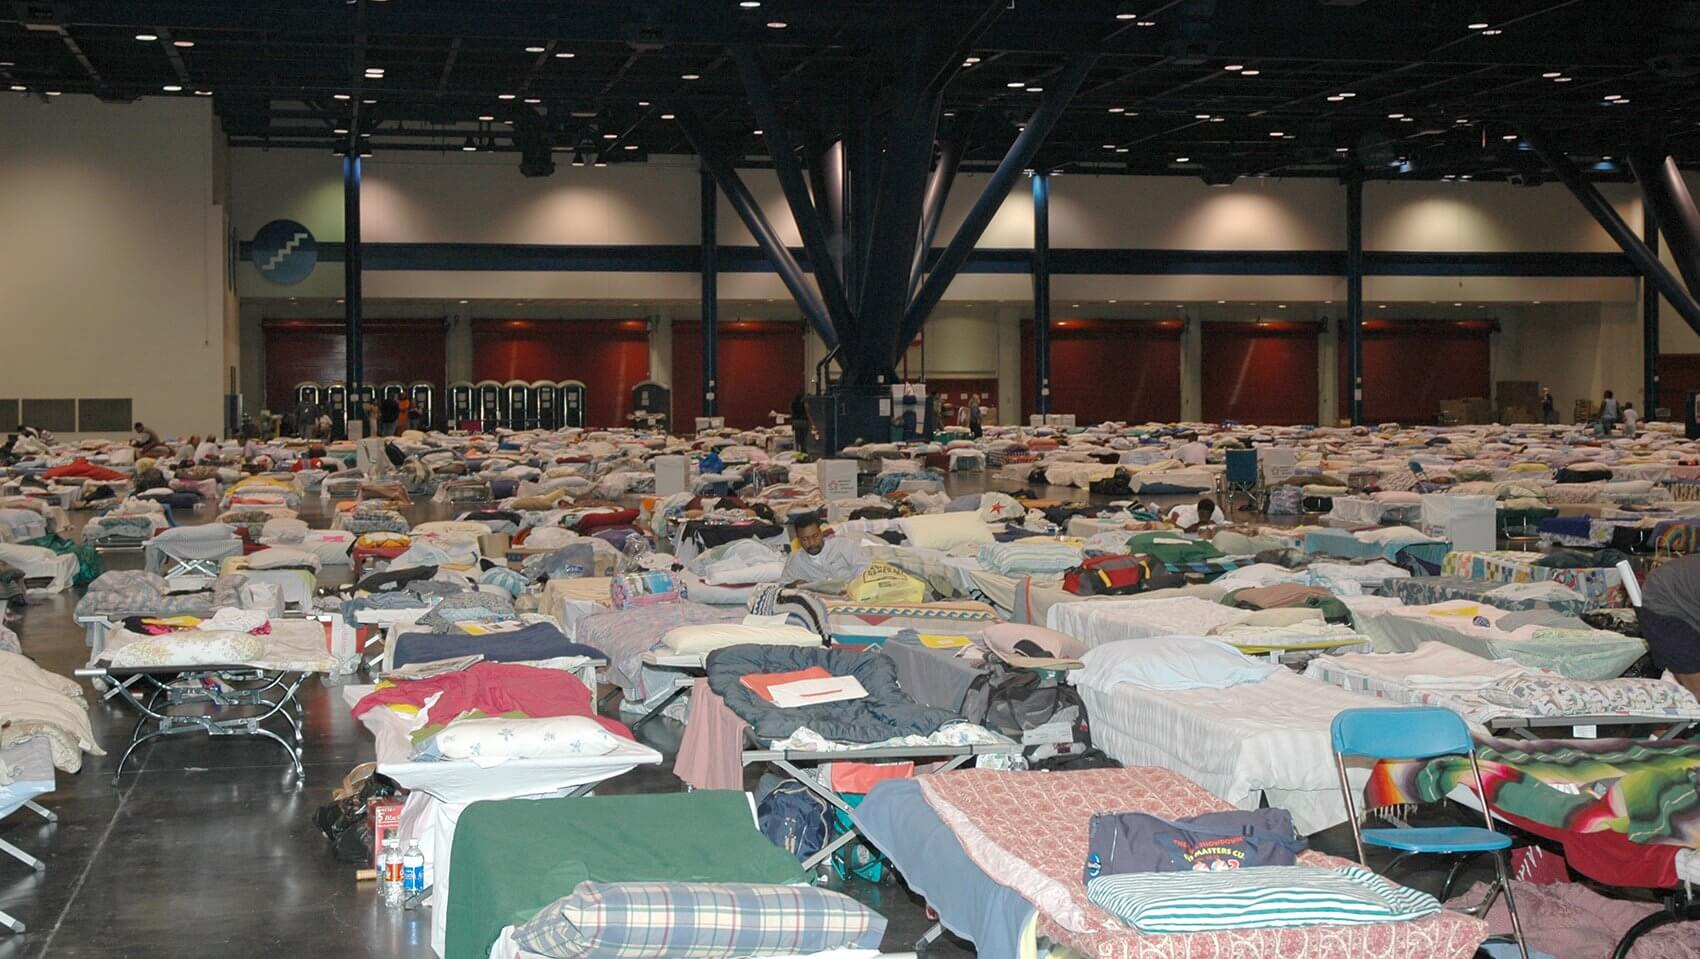 A sea of beds at the George R. Brown Convention Center. (Photo courtesy The University of Texas Health Science Center at Houston)